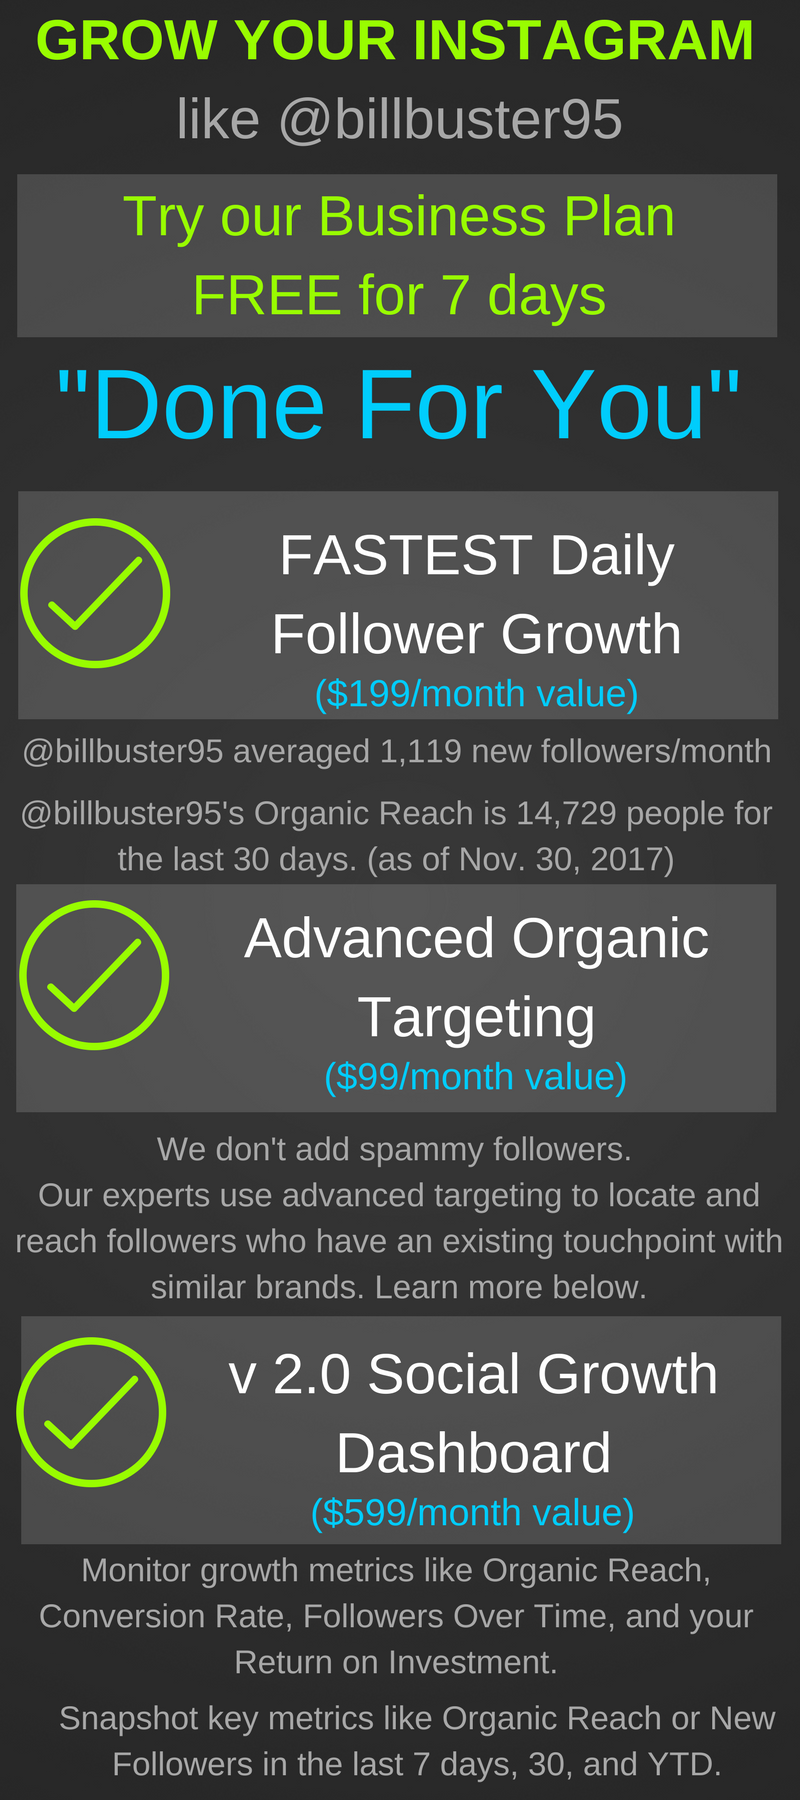 * Organic Reach per month will vary for each account. Organic reach for Business customers averages 500 per day, and 15,000 per month.  ** @billbuster95 started at 321 followers in March 10, 2017 and passed 10,000 followers on November 24th, 2017. That is 260 days and over 9,679 followers added for a monthly average of around 1,138 followers added.  Values of individual items are estimated on what we would charge if the items were separated out within the context of other service values, general market value, and what ad agencies or specialized products/services charge.